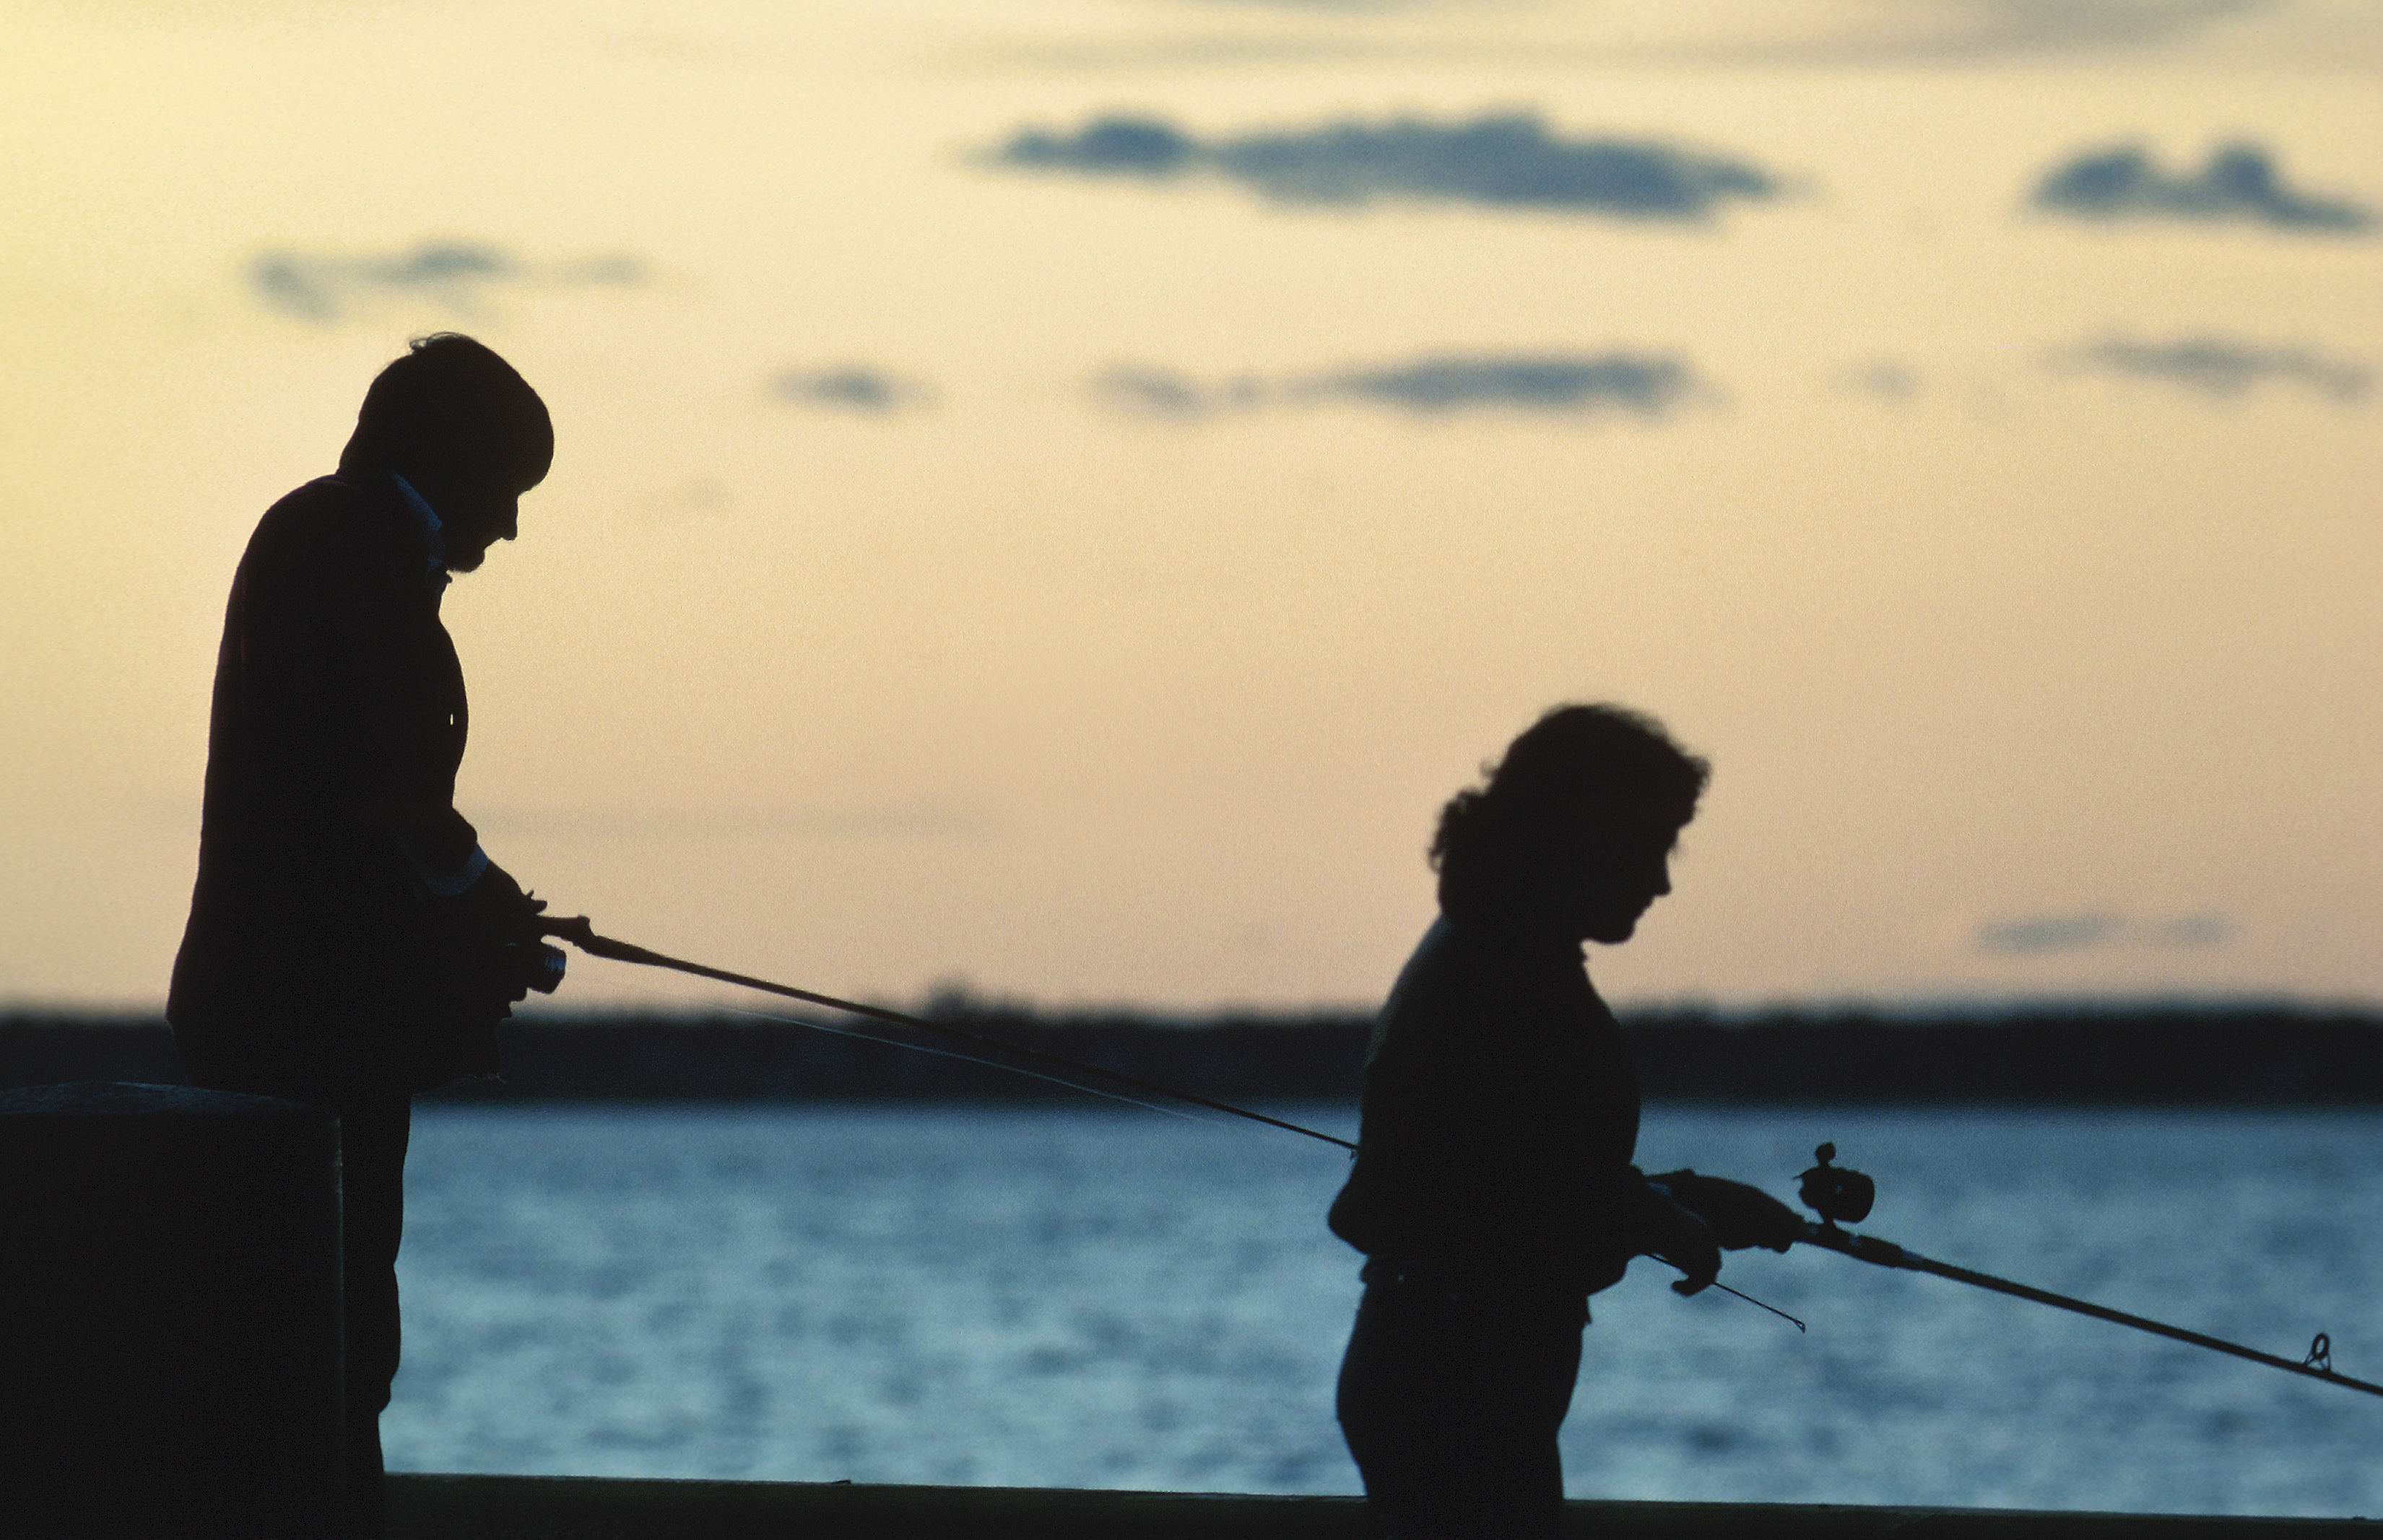 Angling is popular in New Brunswick